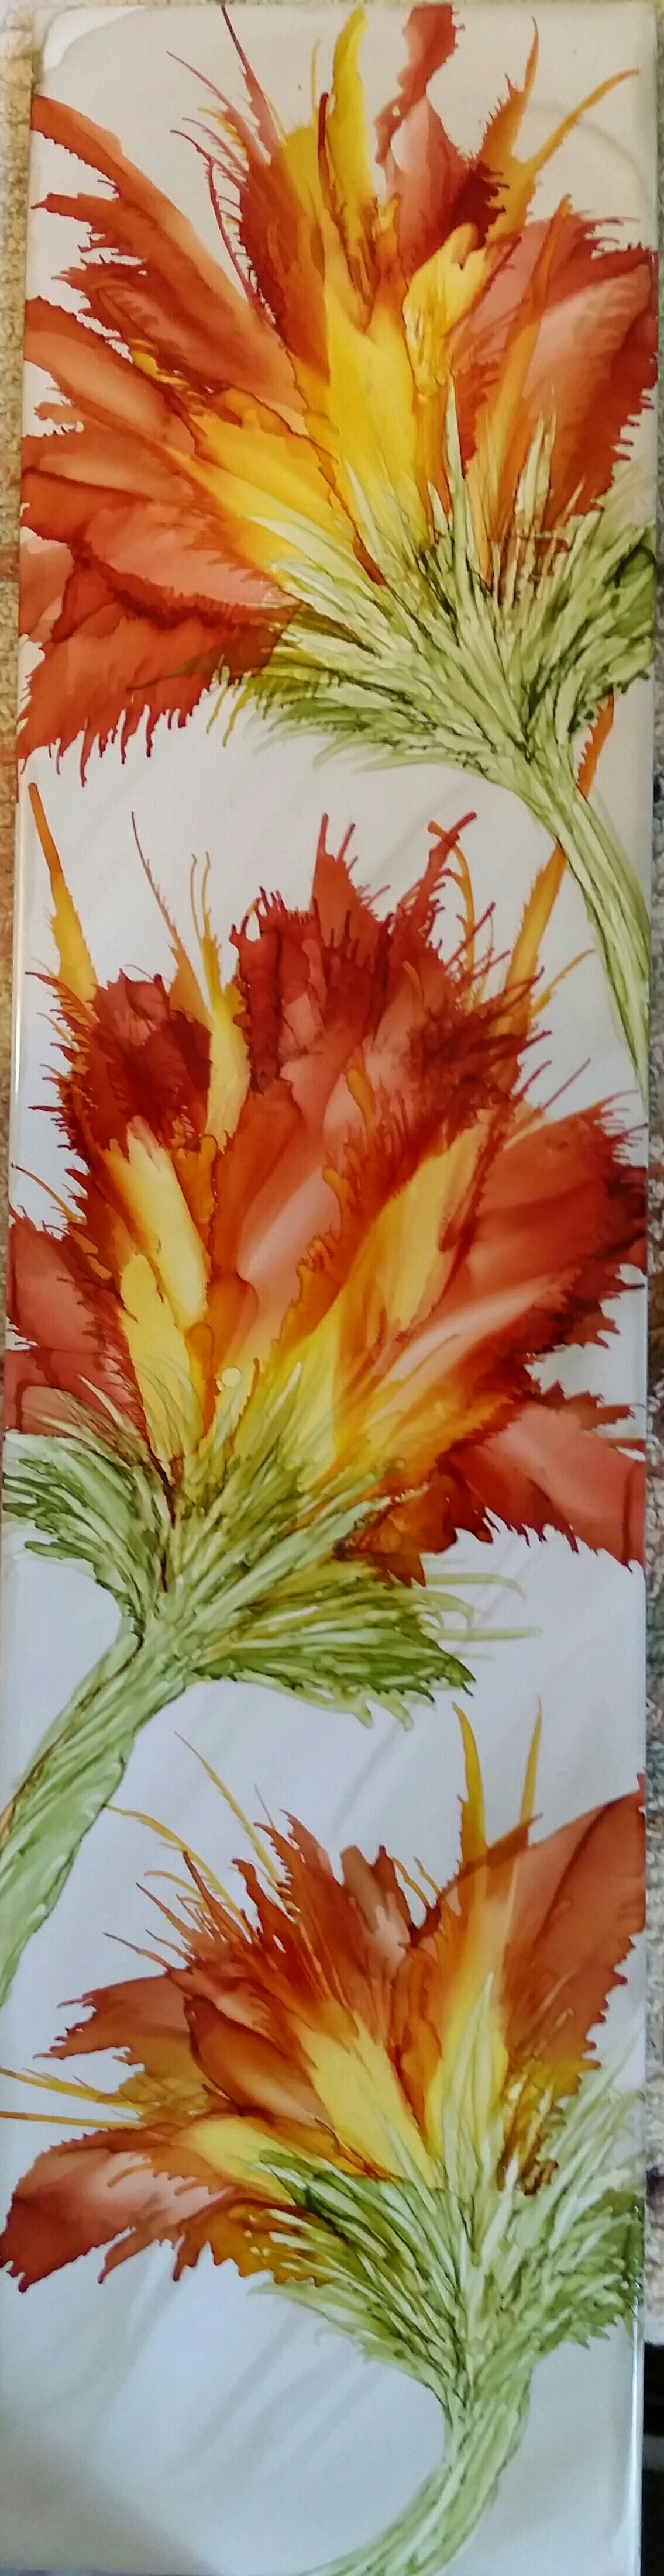 Flower in my favorite alcohol ink colors on long 16x4 ceramic tile by Tina